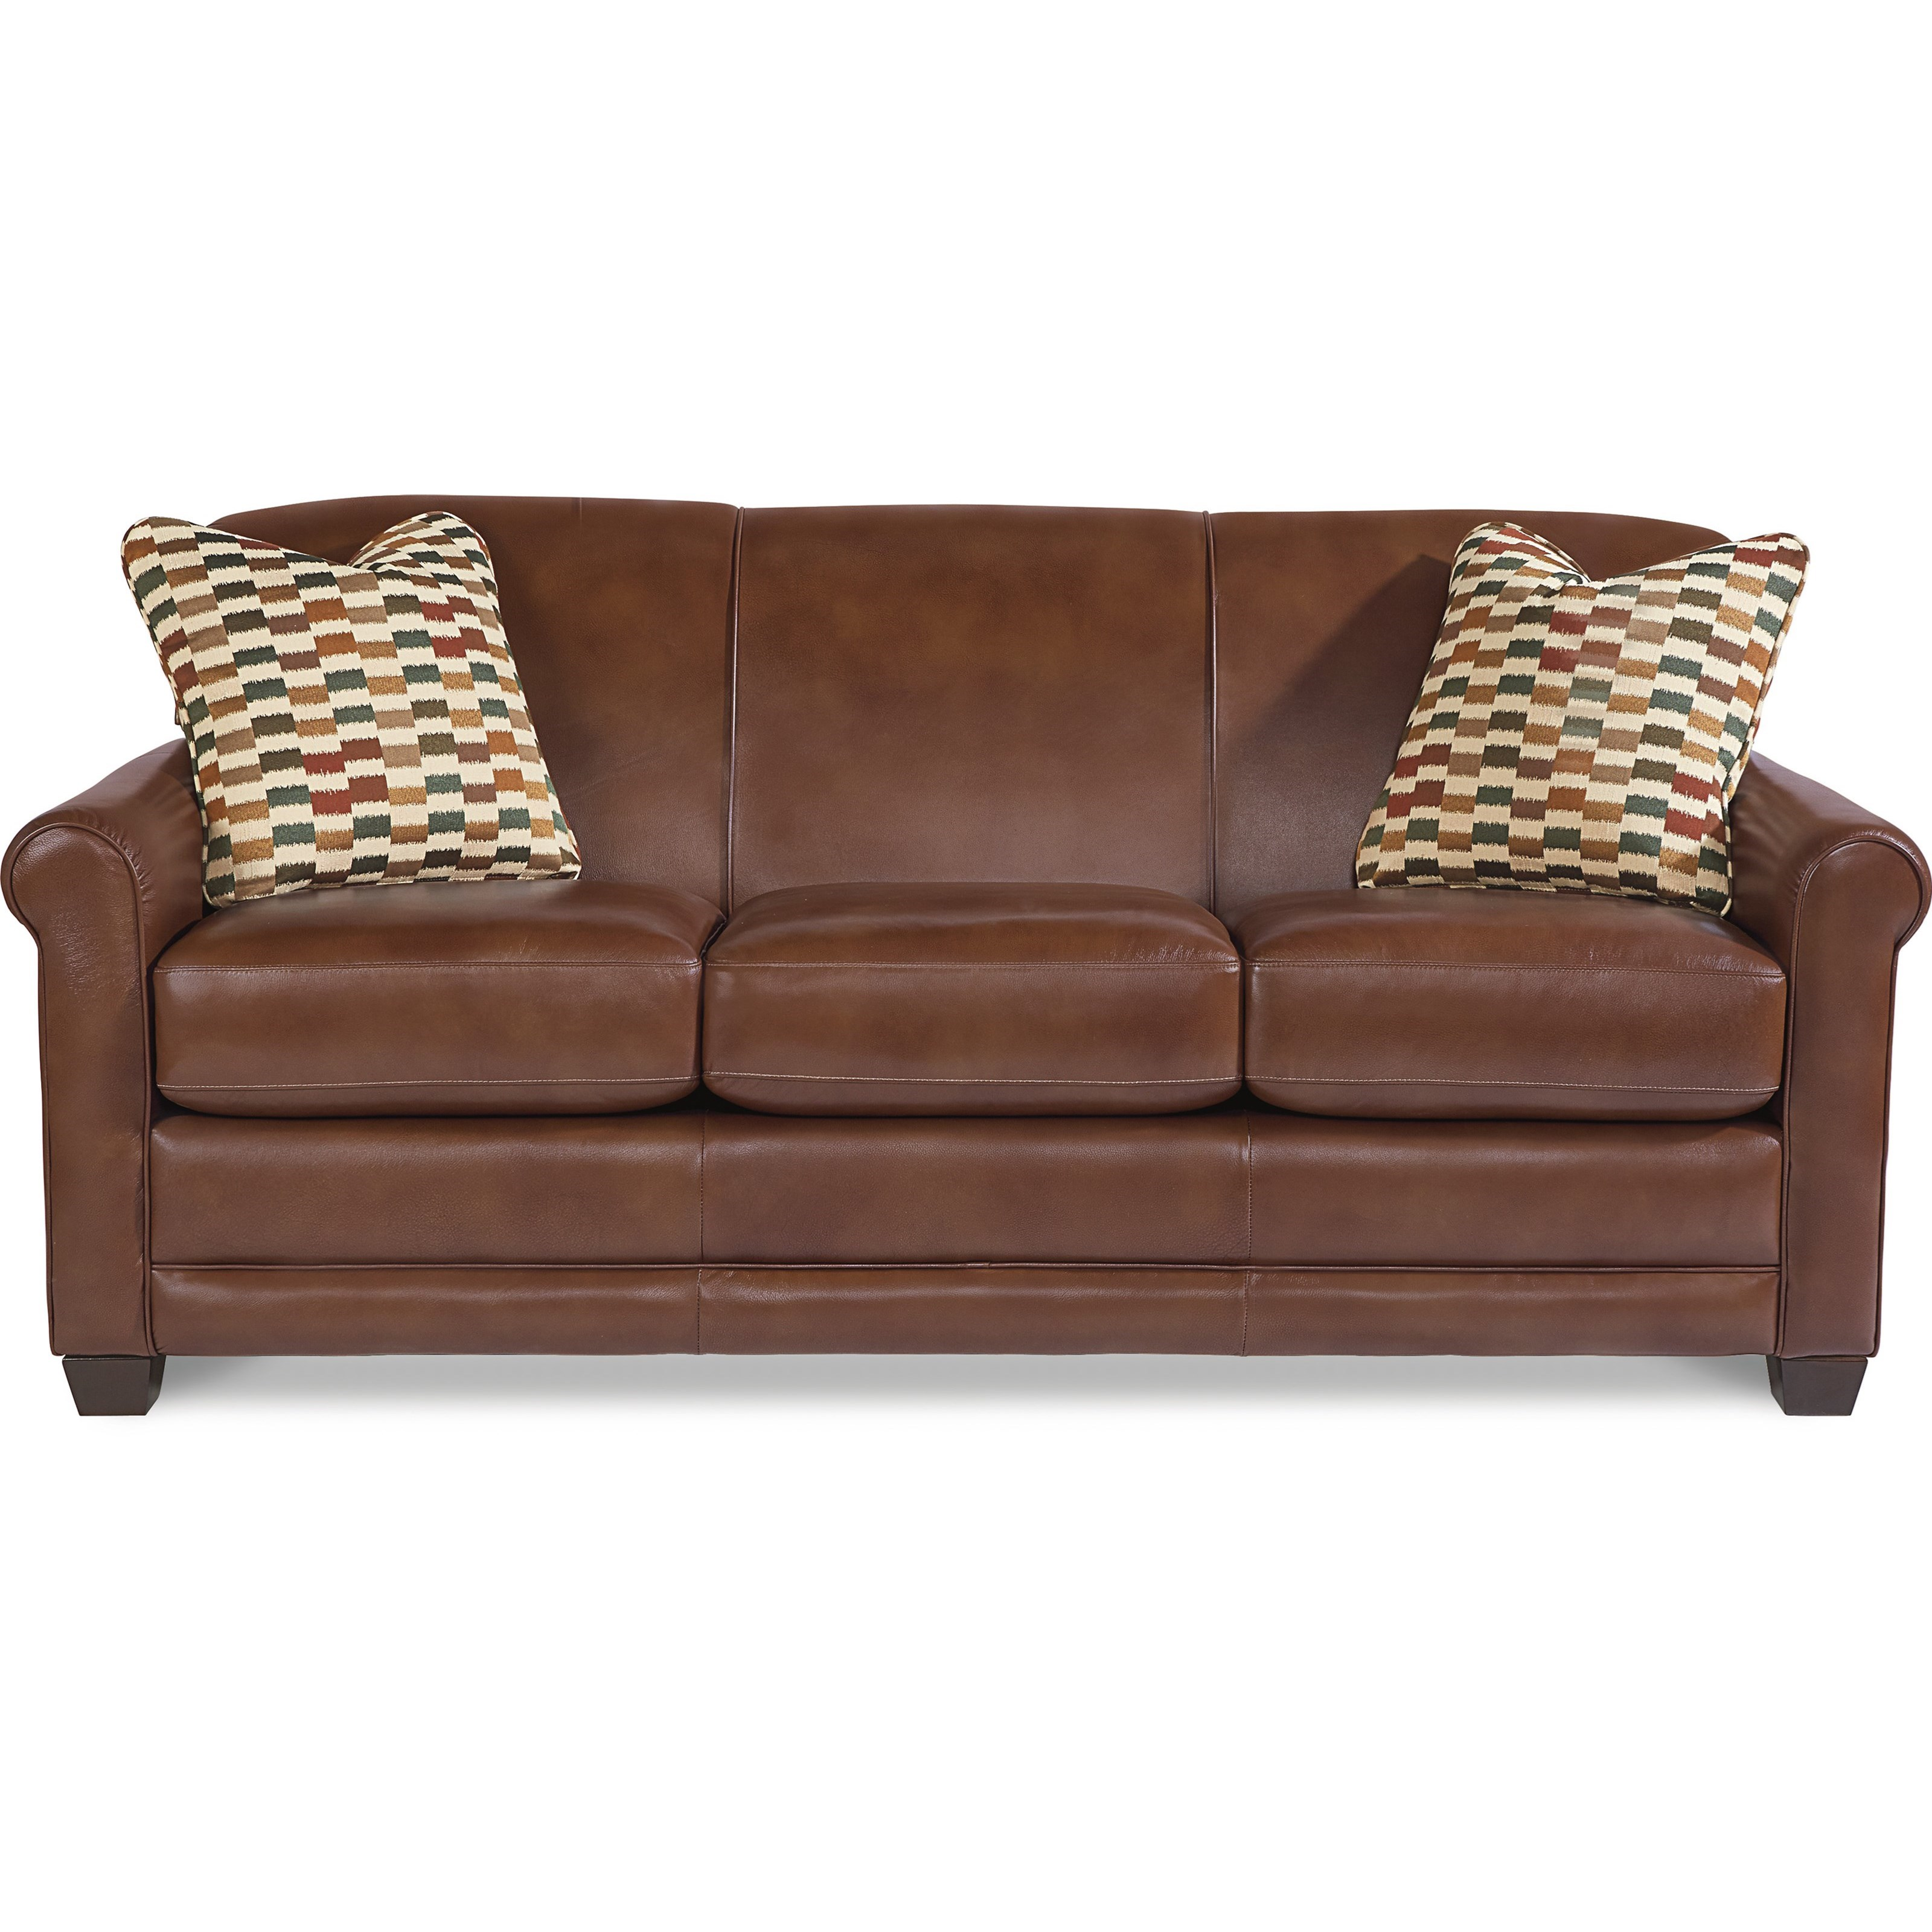 replacement cushions for living room sofa 2 designs with blue la-z-boy amanda casual premier comfortcore ...